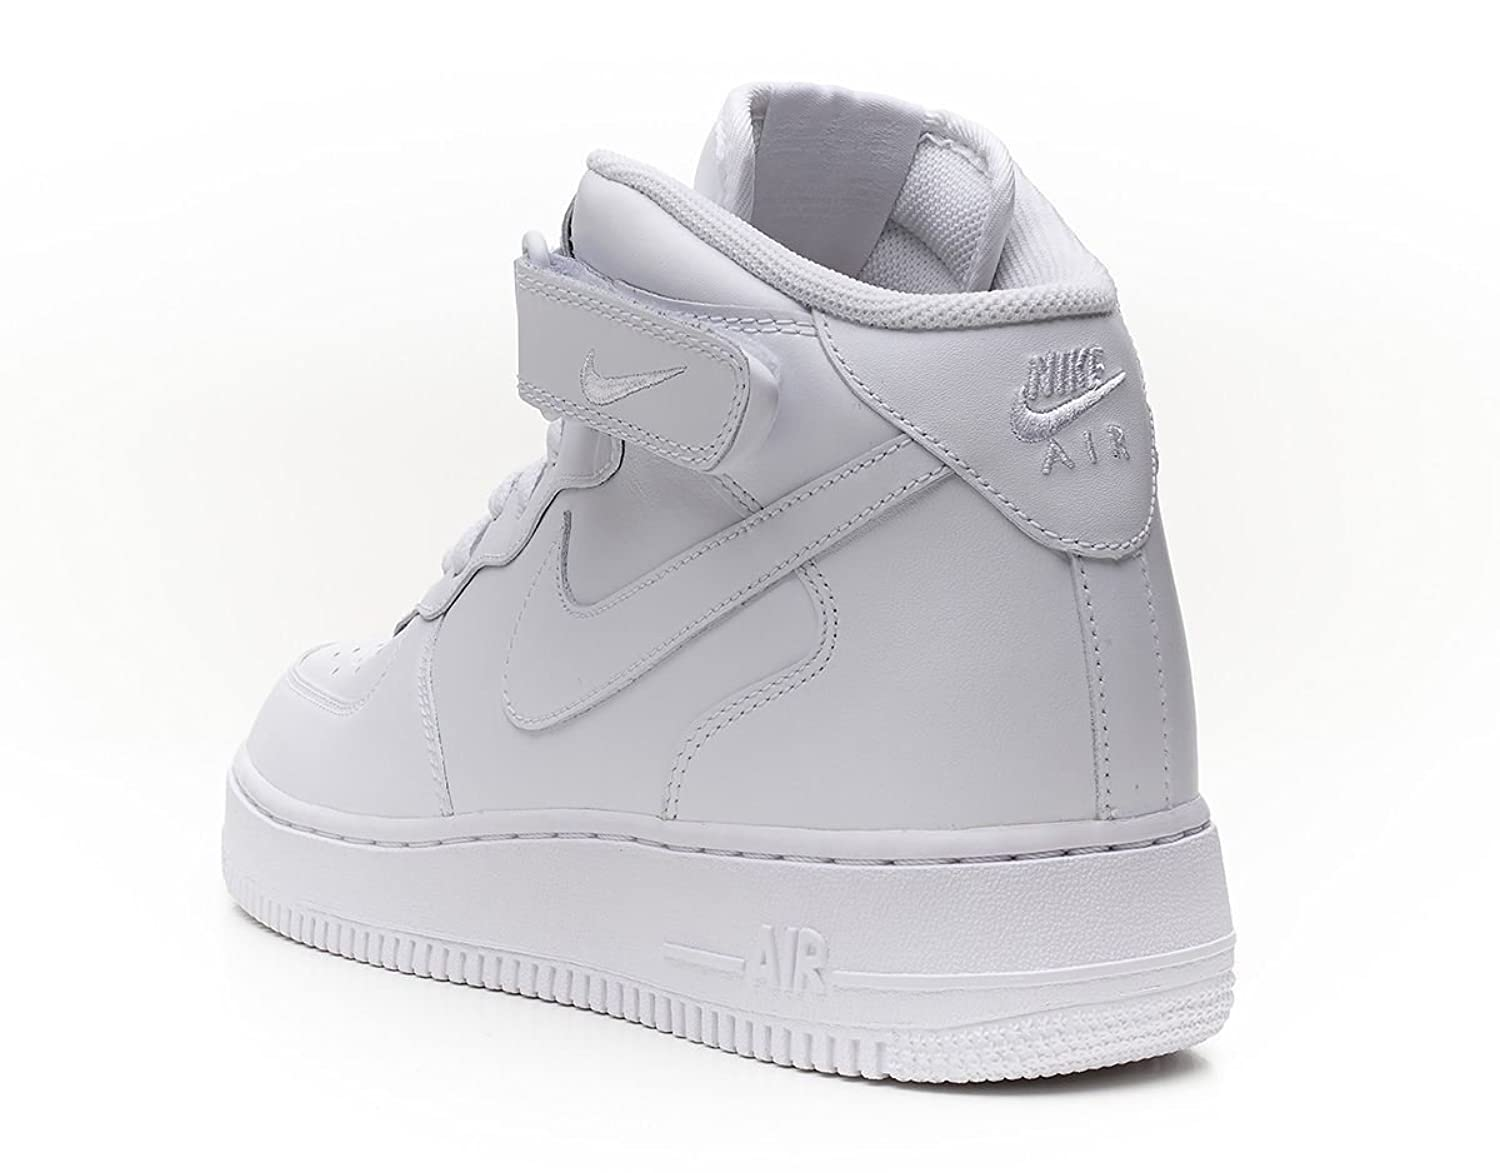 Nike Air Force 1 Bassa Nera India Online 9uJISaR